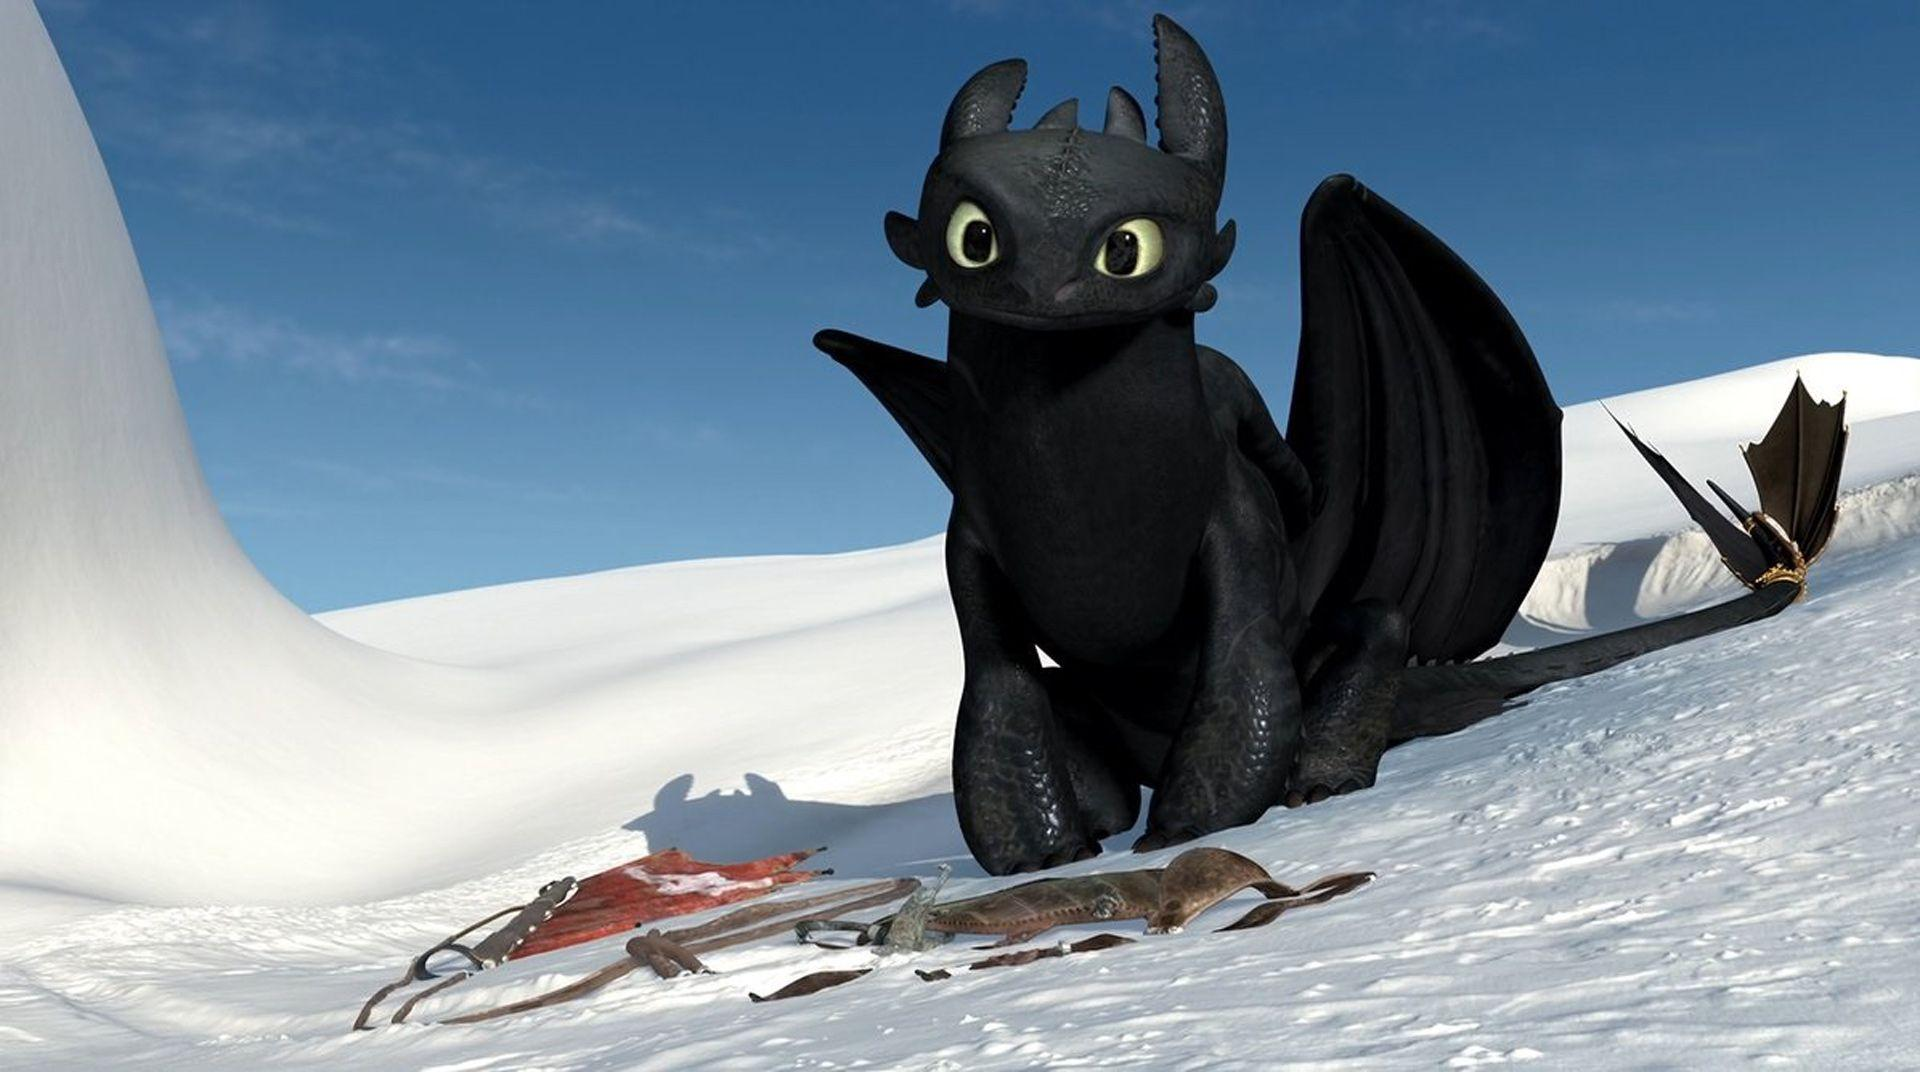 Toothless the dragon wallpapers wallpaper cave - Toothless wallpaper ...